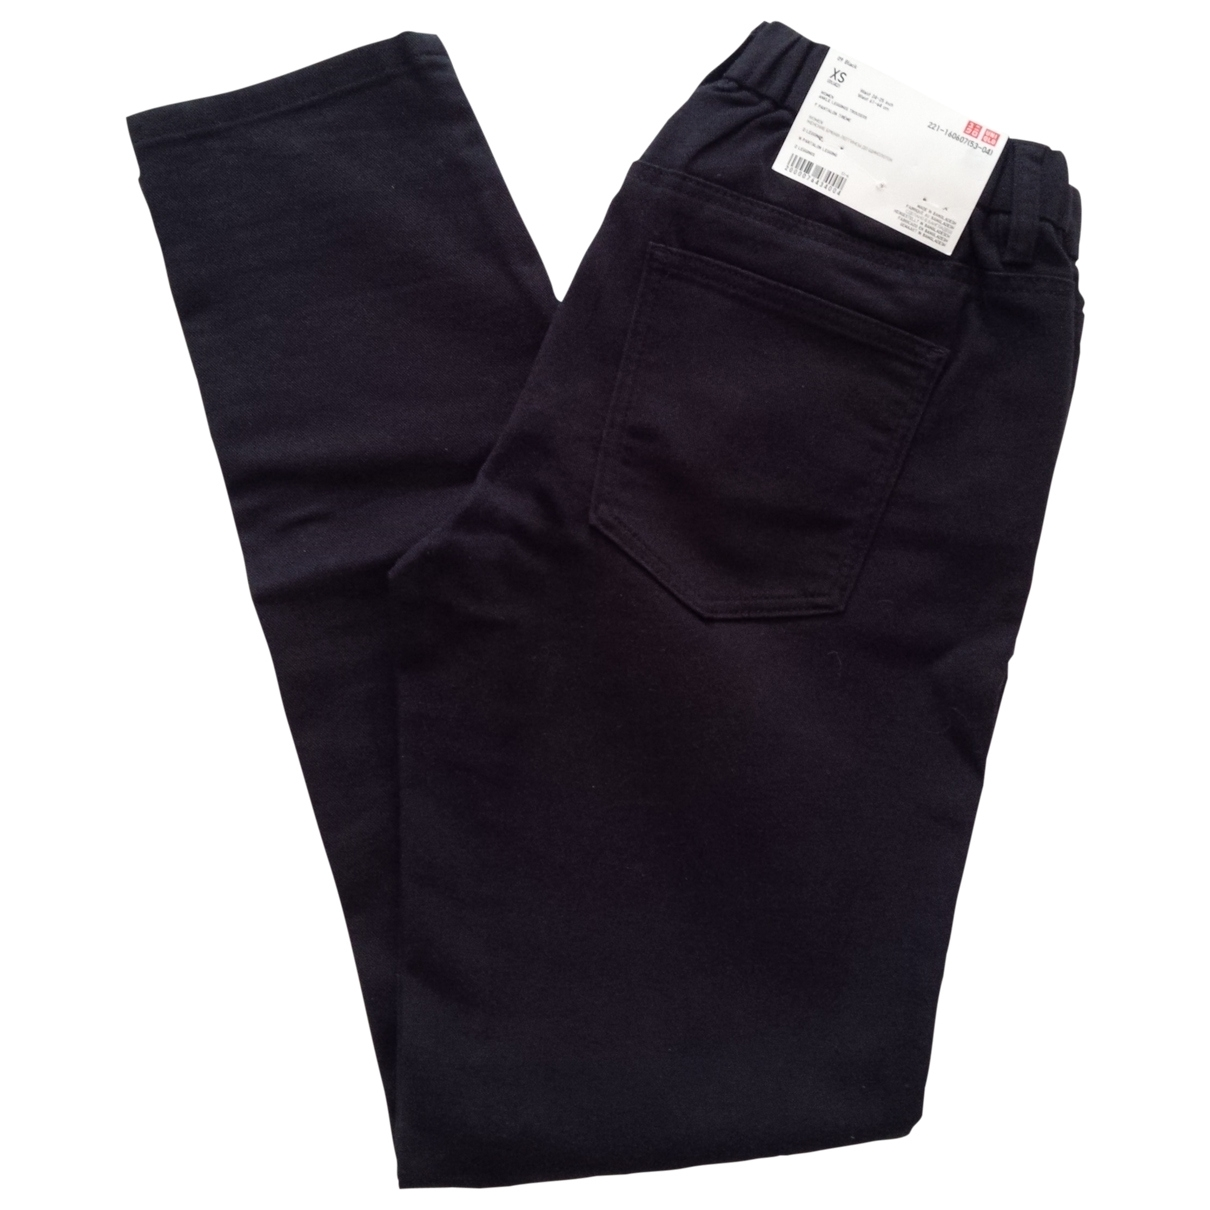 Uniqlo \N Black Cotton Trousers for Women XS International